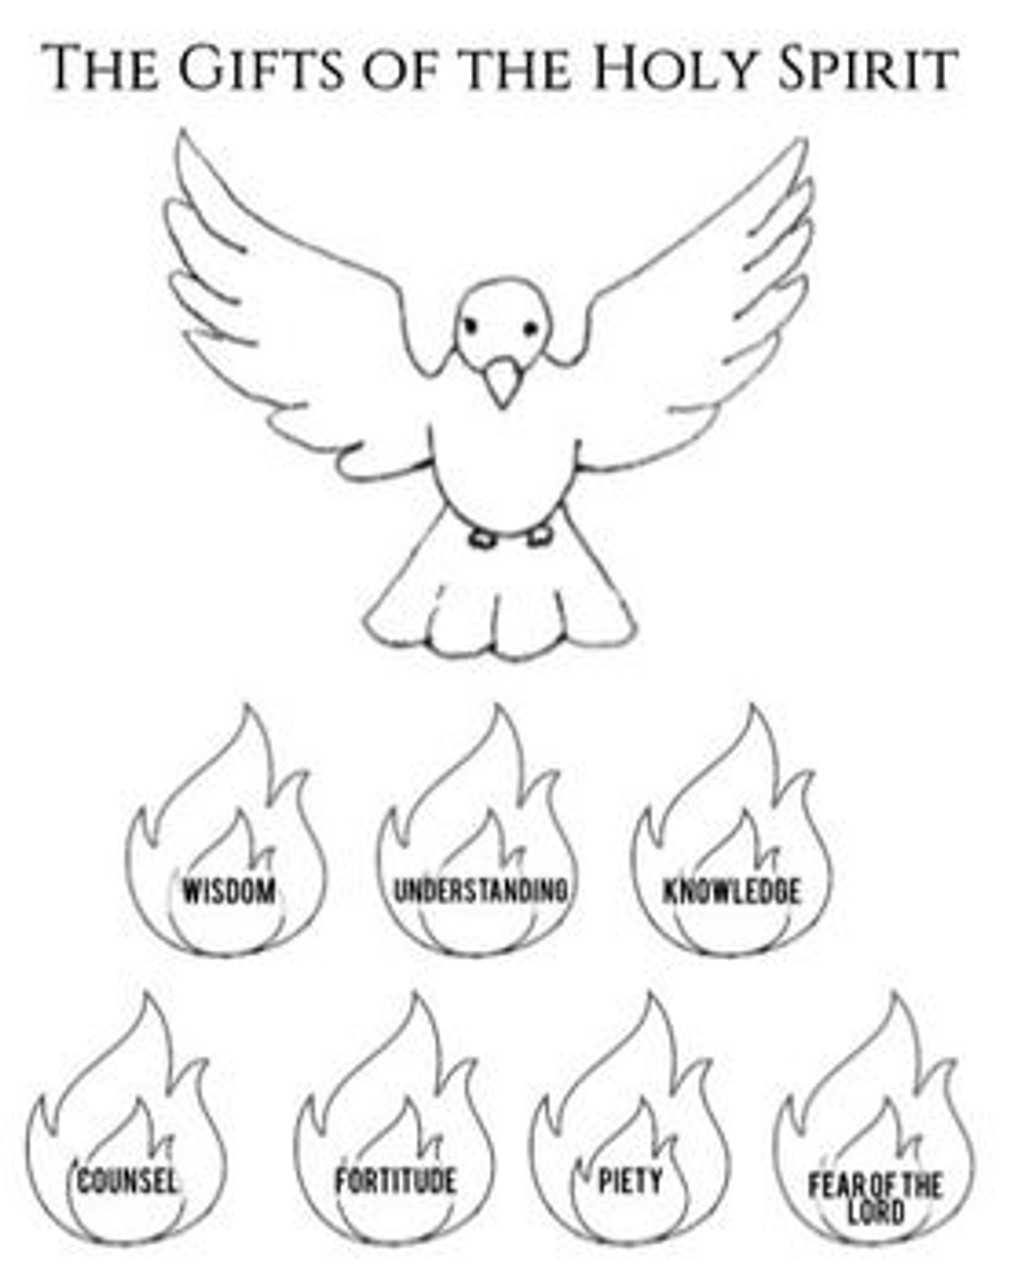 Pentecost Gifts of the Holy Spirit Confirmation Crafts - Amped Up Learning [ 1280 x 1013 Pixel ]